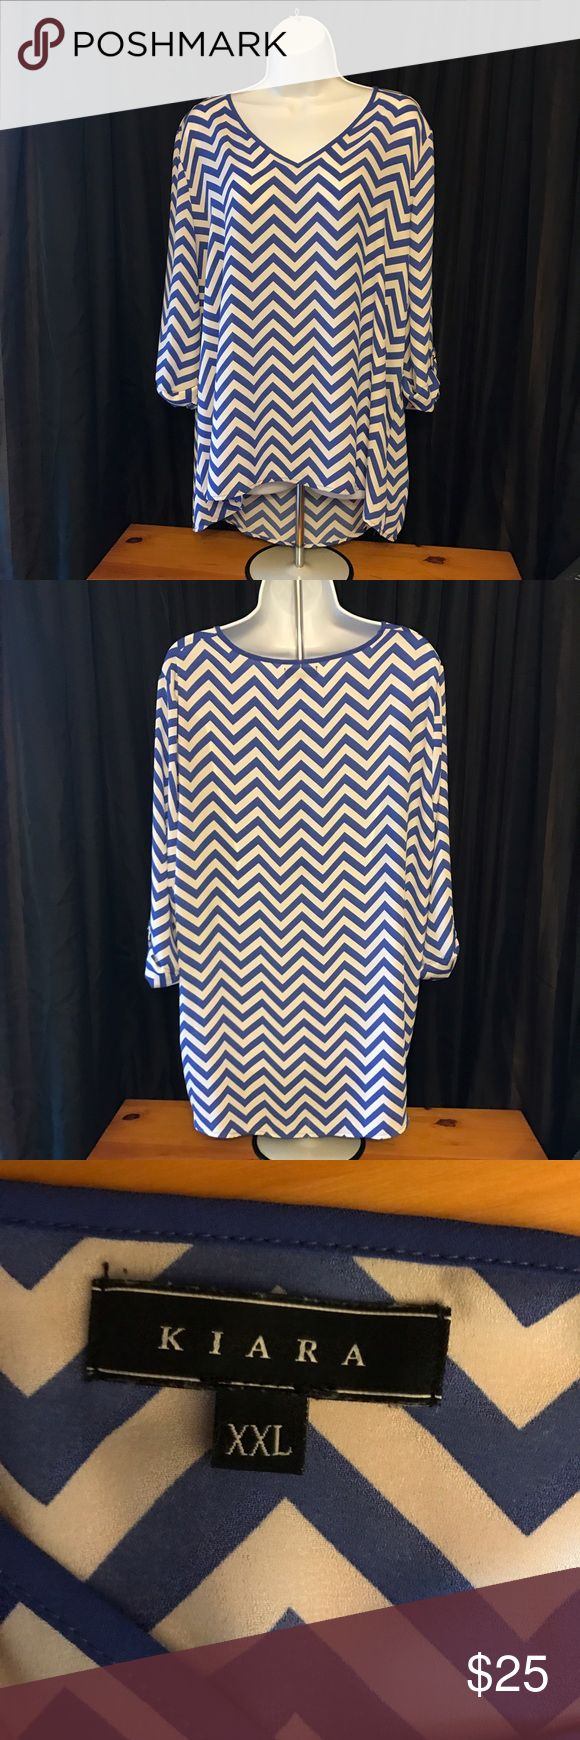 Blue and White Chevron Top Super fun and cute chevron top. In great condition. Size XXL. Tops Blouses